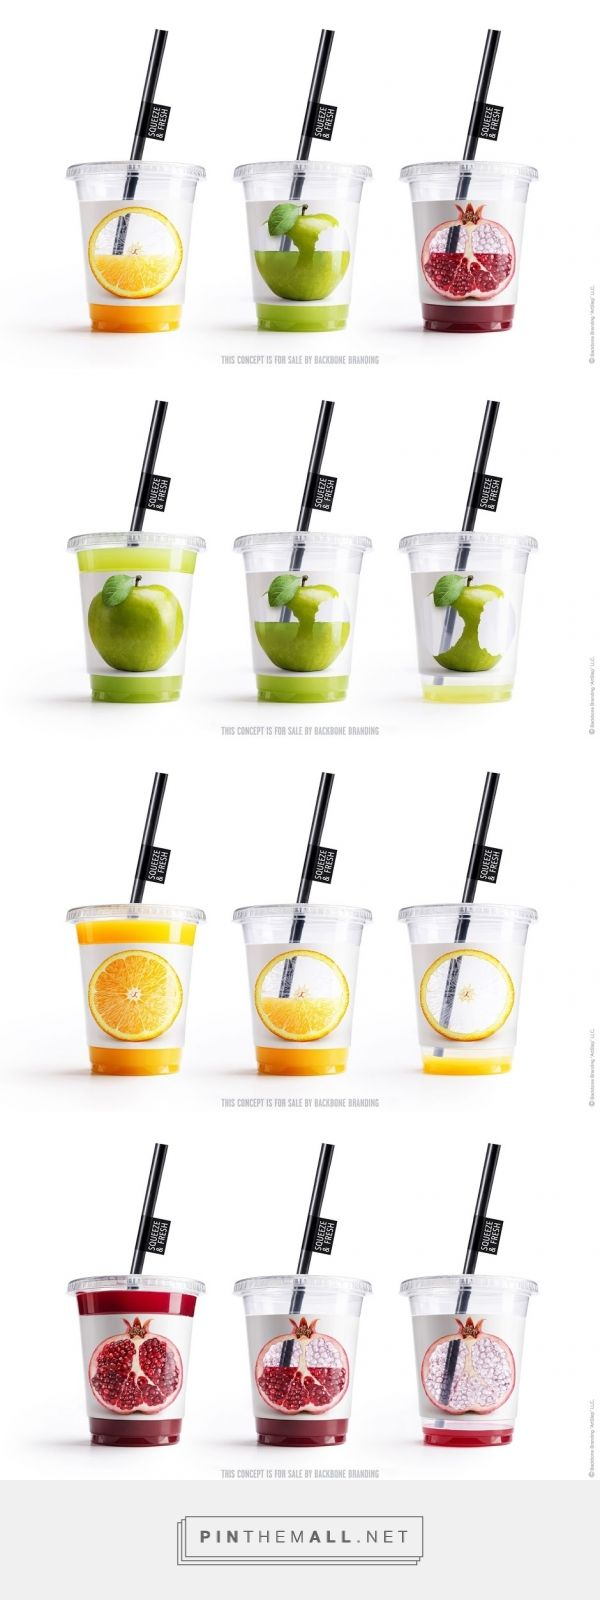 This type of cup is very symbolic of fresh juices. This could used in a similar way to the glass bottle design on the milk carton.